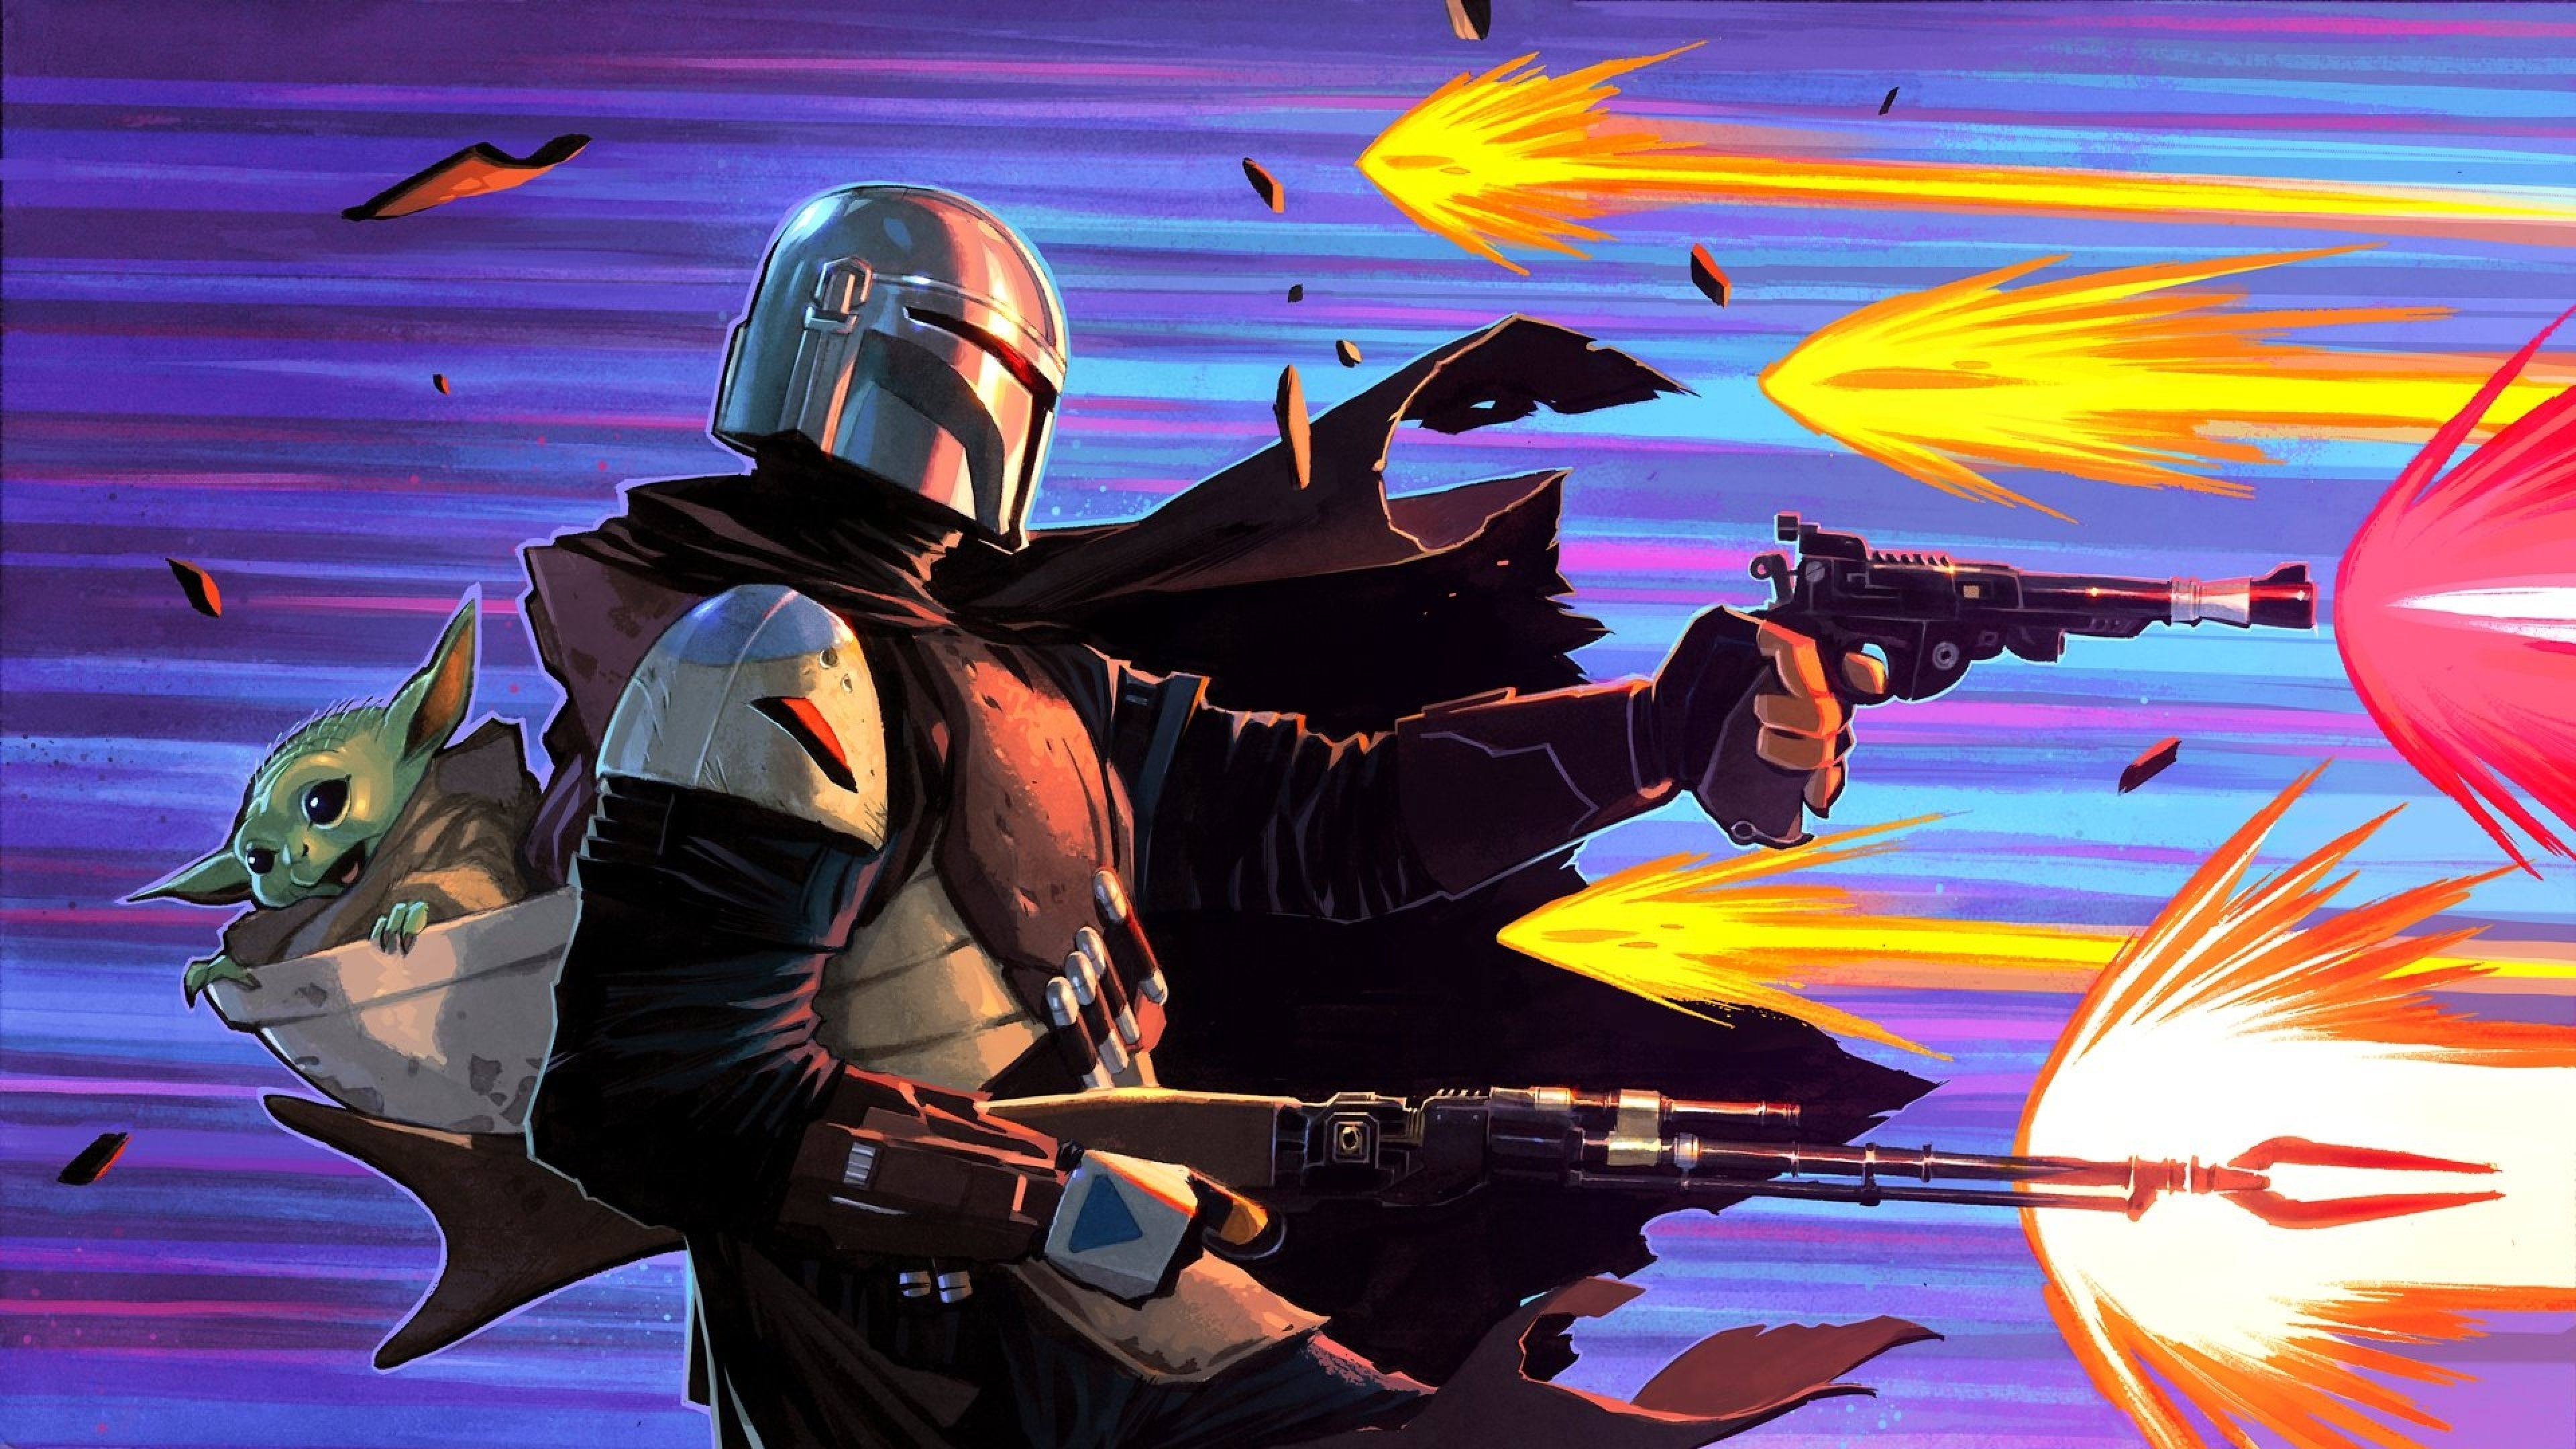 Fortnite Baby Yoda Wallpapers Wallpaper Cave Fortnite's marvel arc is now over after the big final event last night that saw galactus being destroyed with the help of iron man, thor and a whole lot of battle buses. wallpaper cave